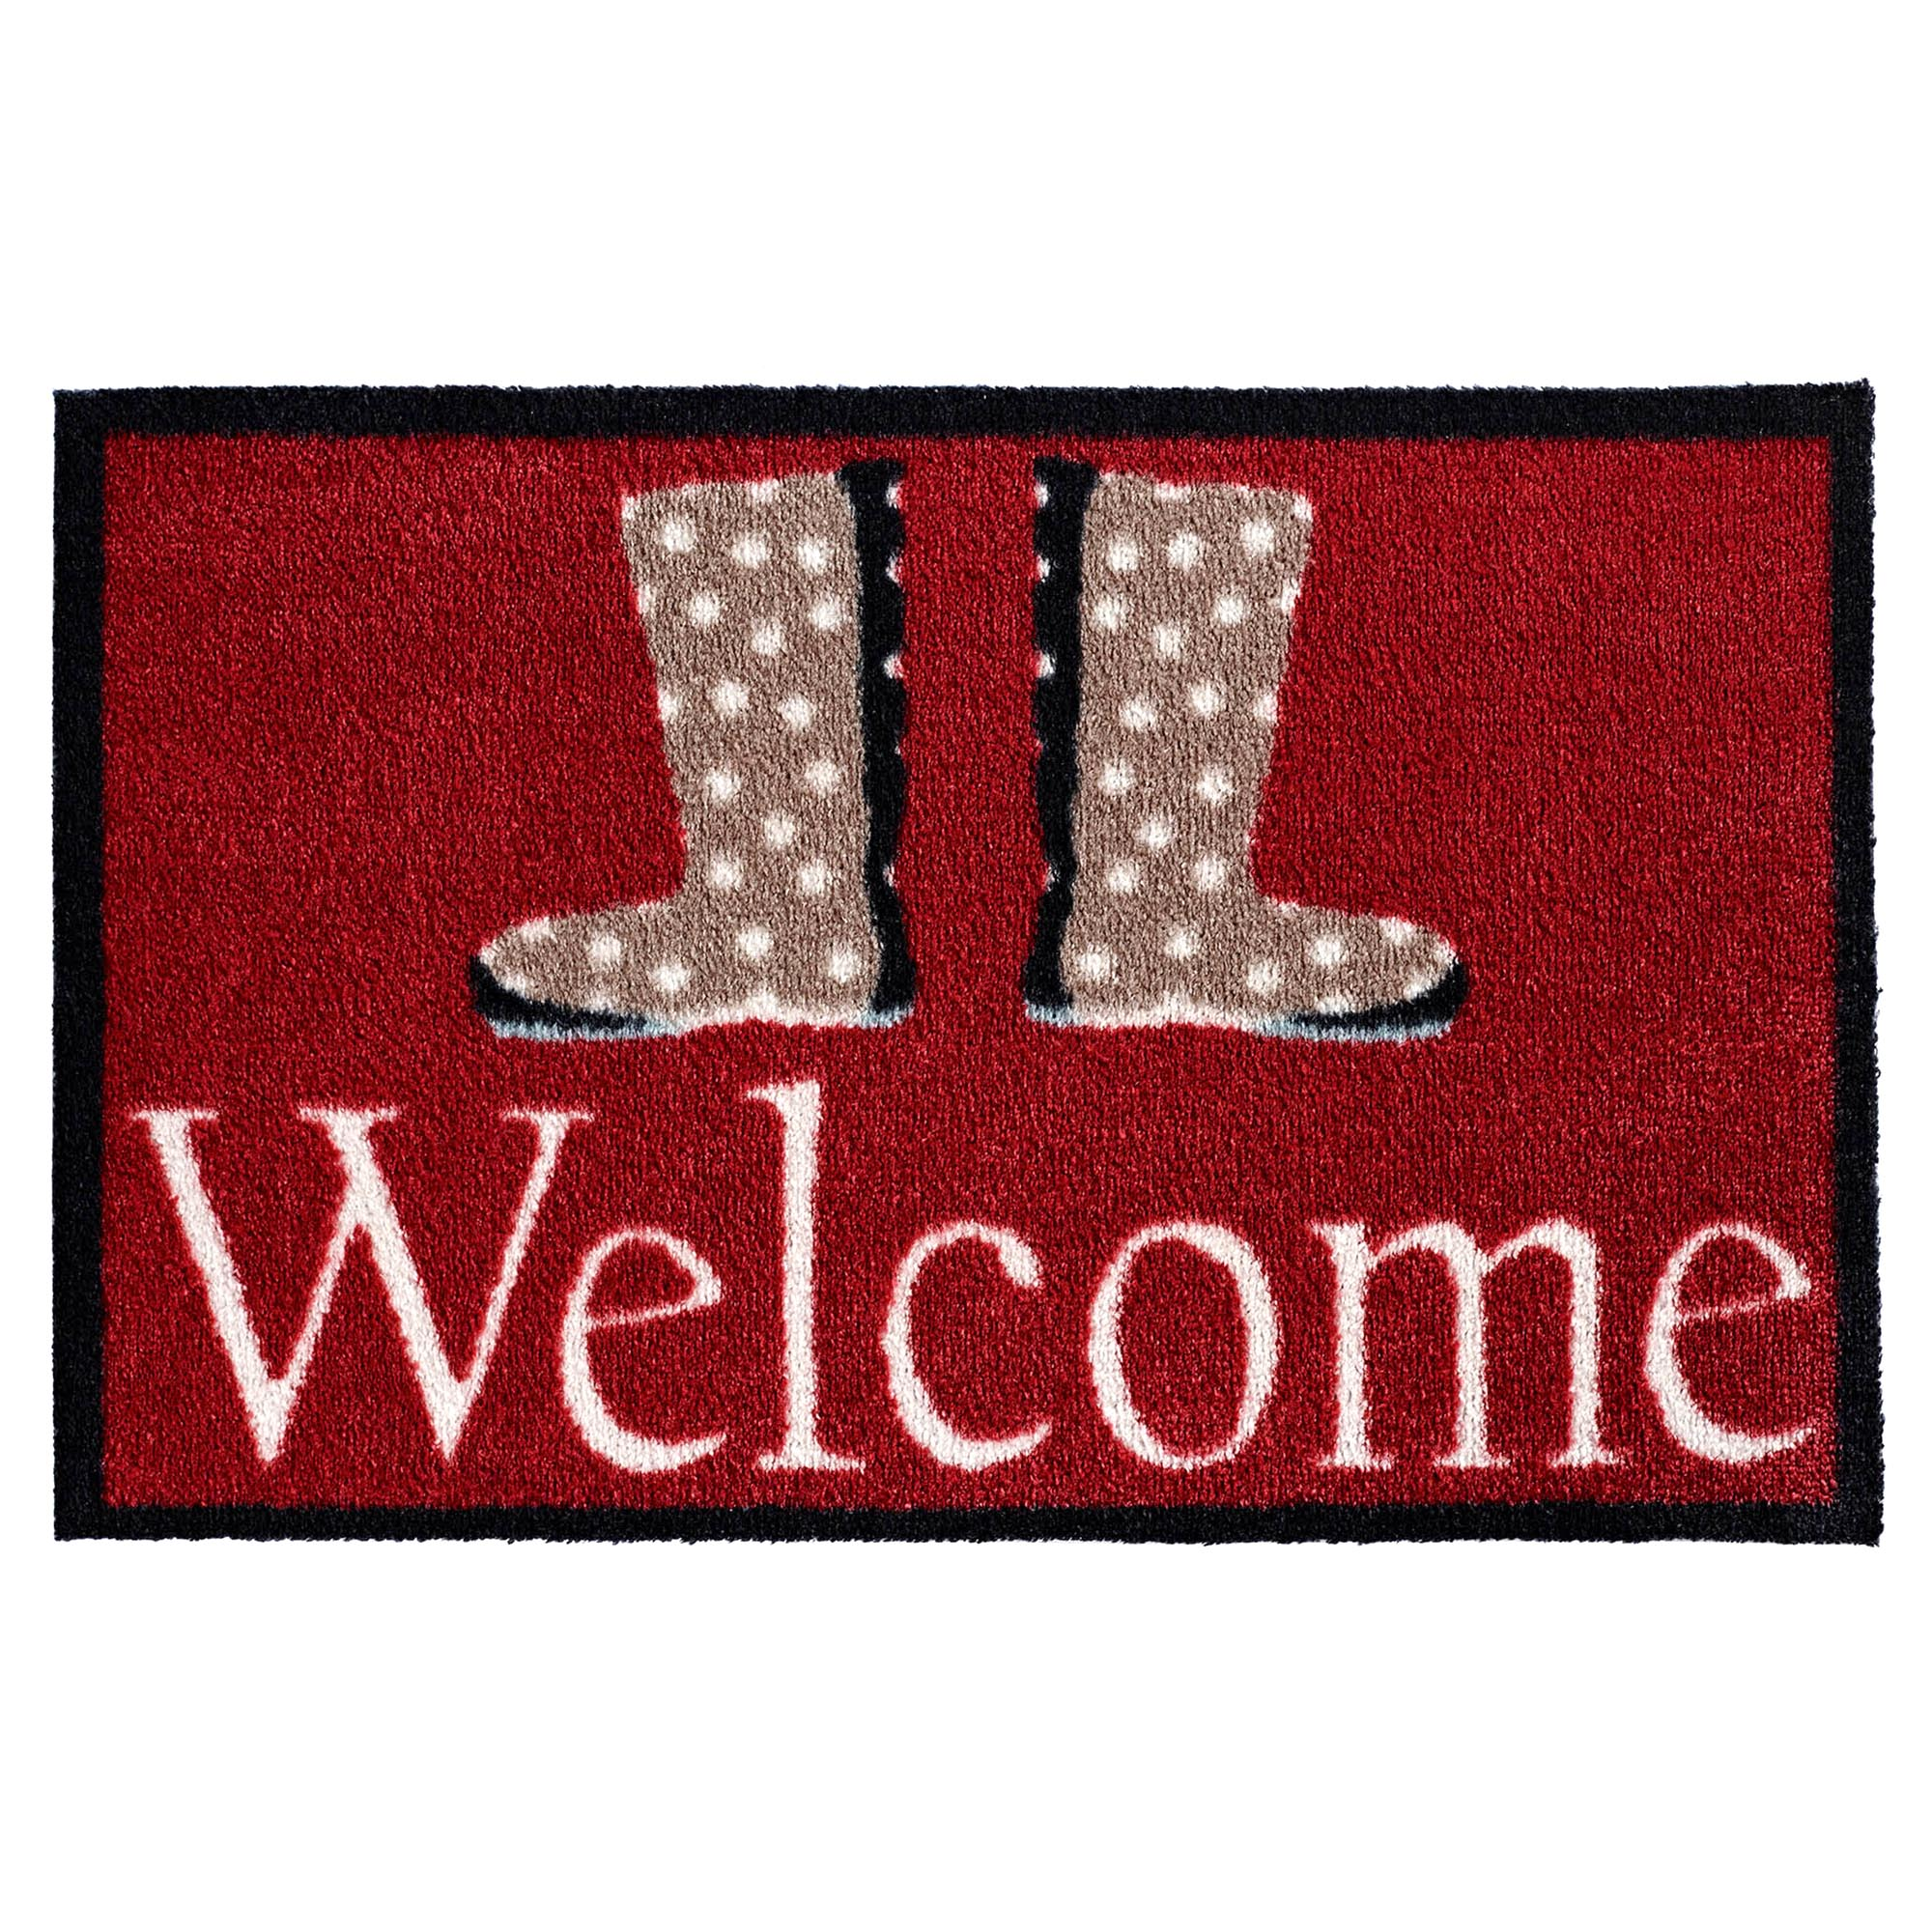 Marvel Welcome Mat Dunelm